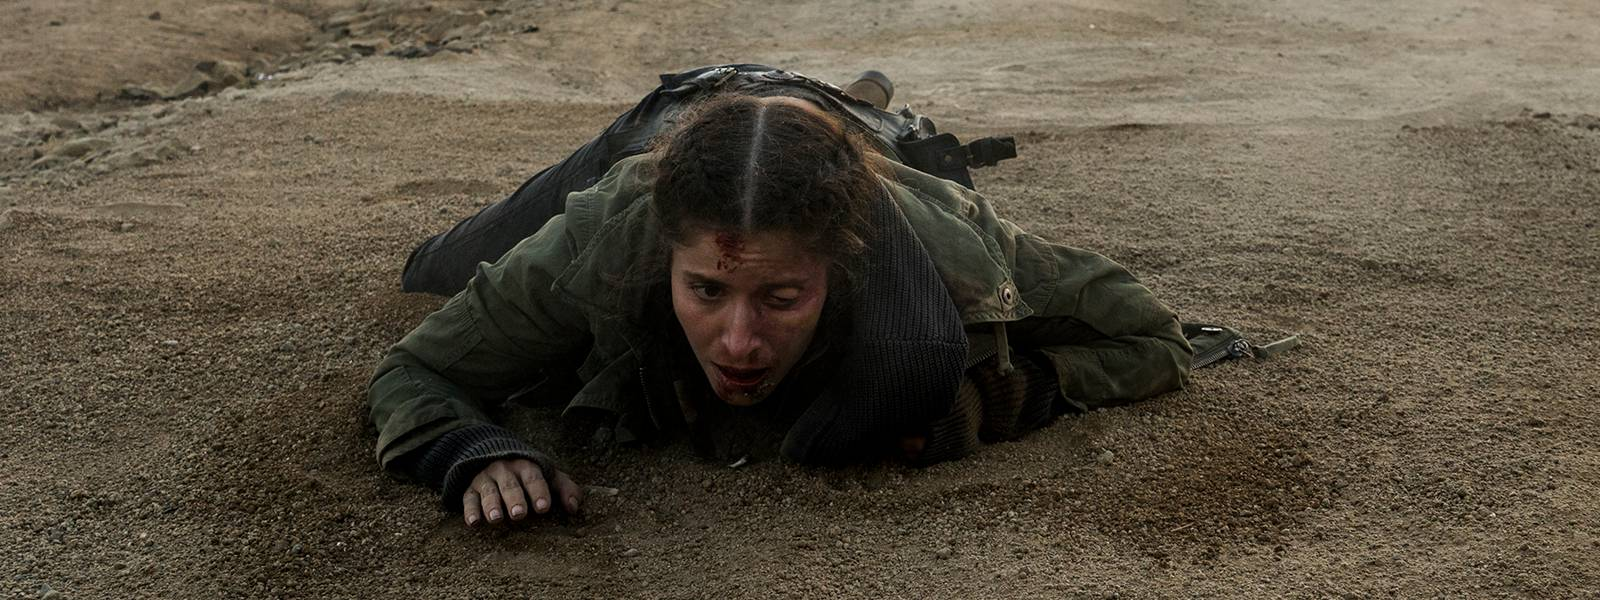 fear-the-walking-dead-episode-307-ofelia-mason-post-800×600